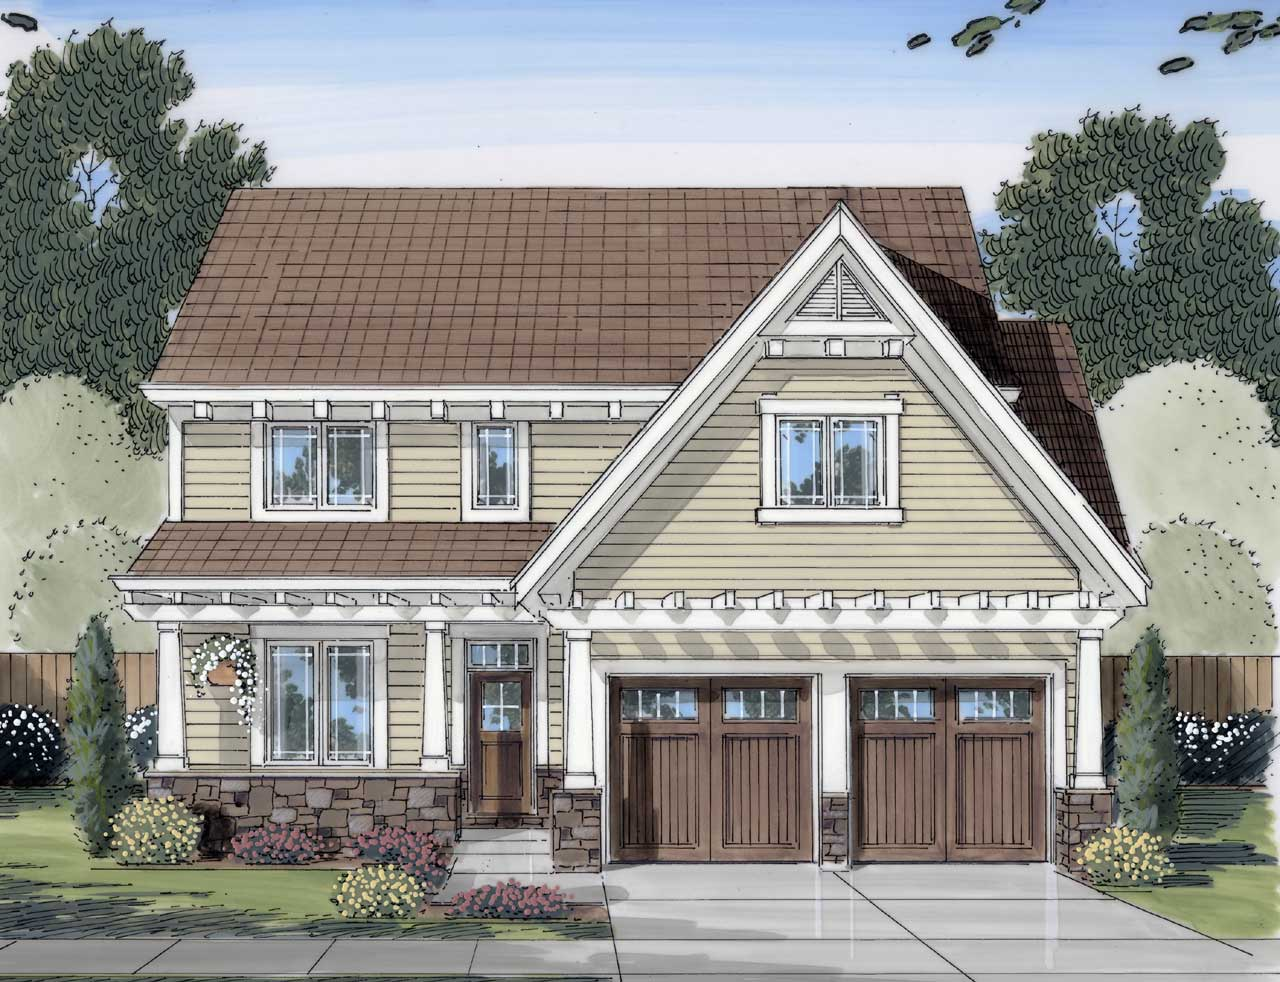 Country Style Home Design 23-433